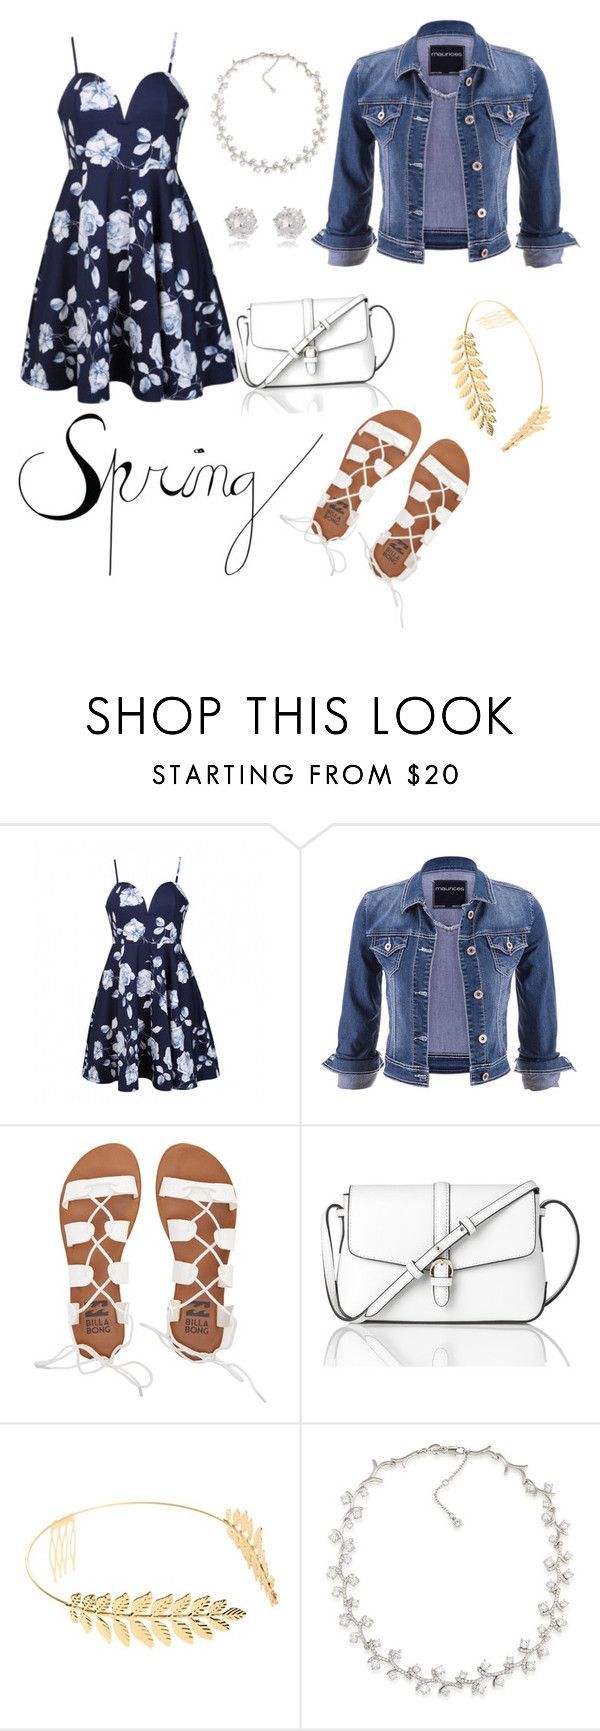 """Untitled #126"" by paigeromano ❤ liked on Polyvore featuring Ally Fashion, maurices, Billabong, L.K.Bennett, Cara, Carolee and River Island"